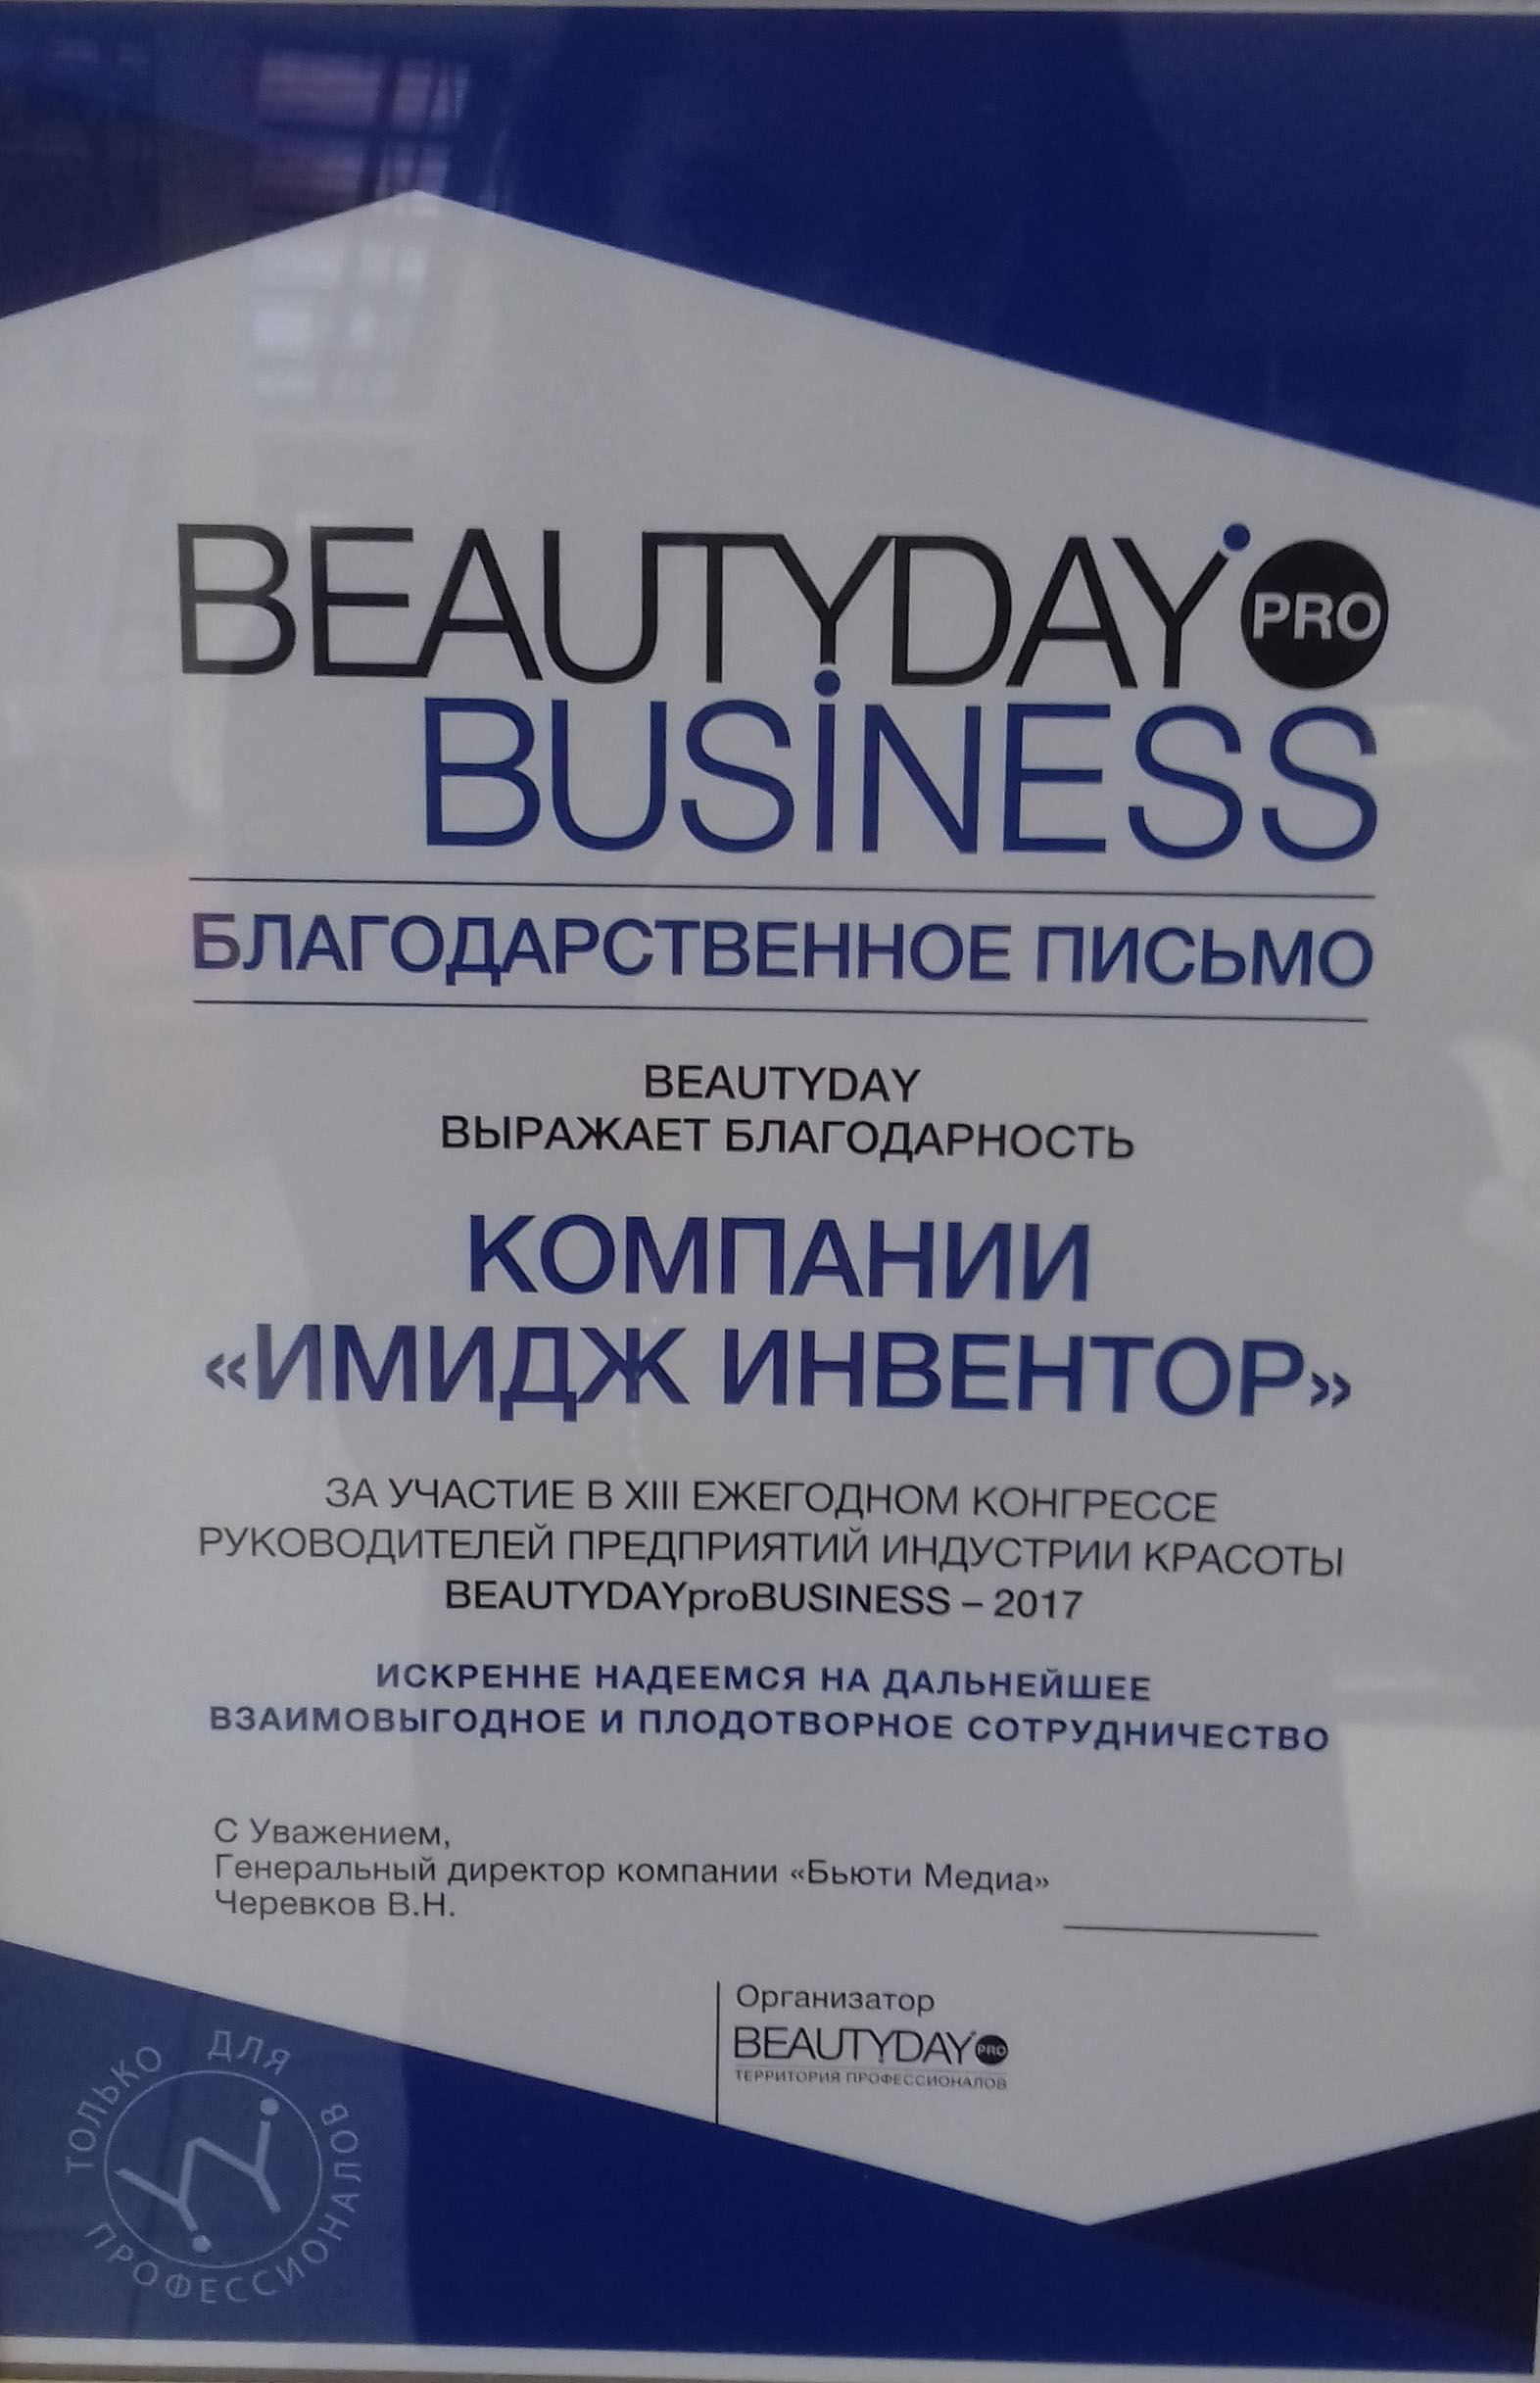 BEAUTYDAYproBUSINESS-2017